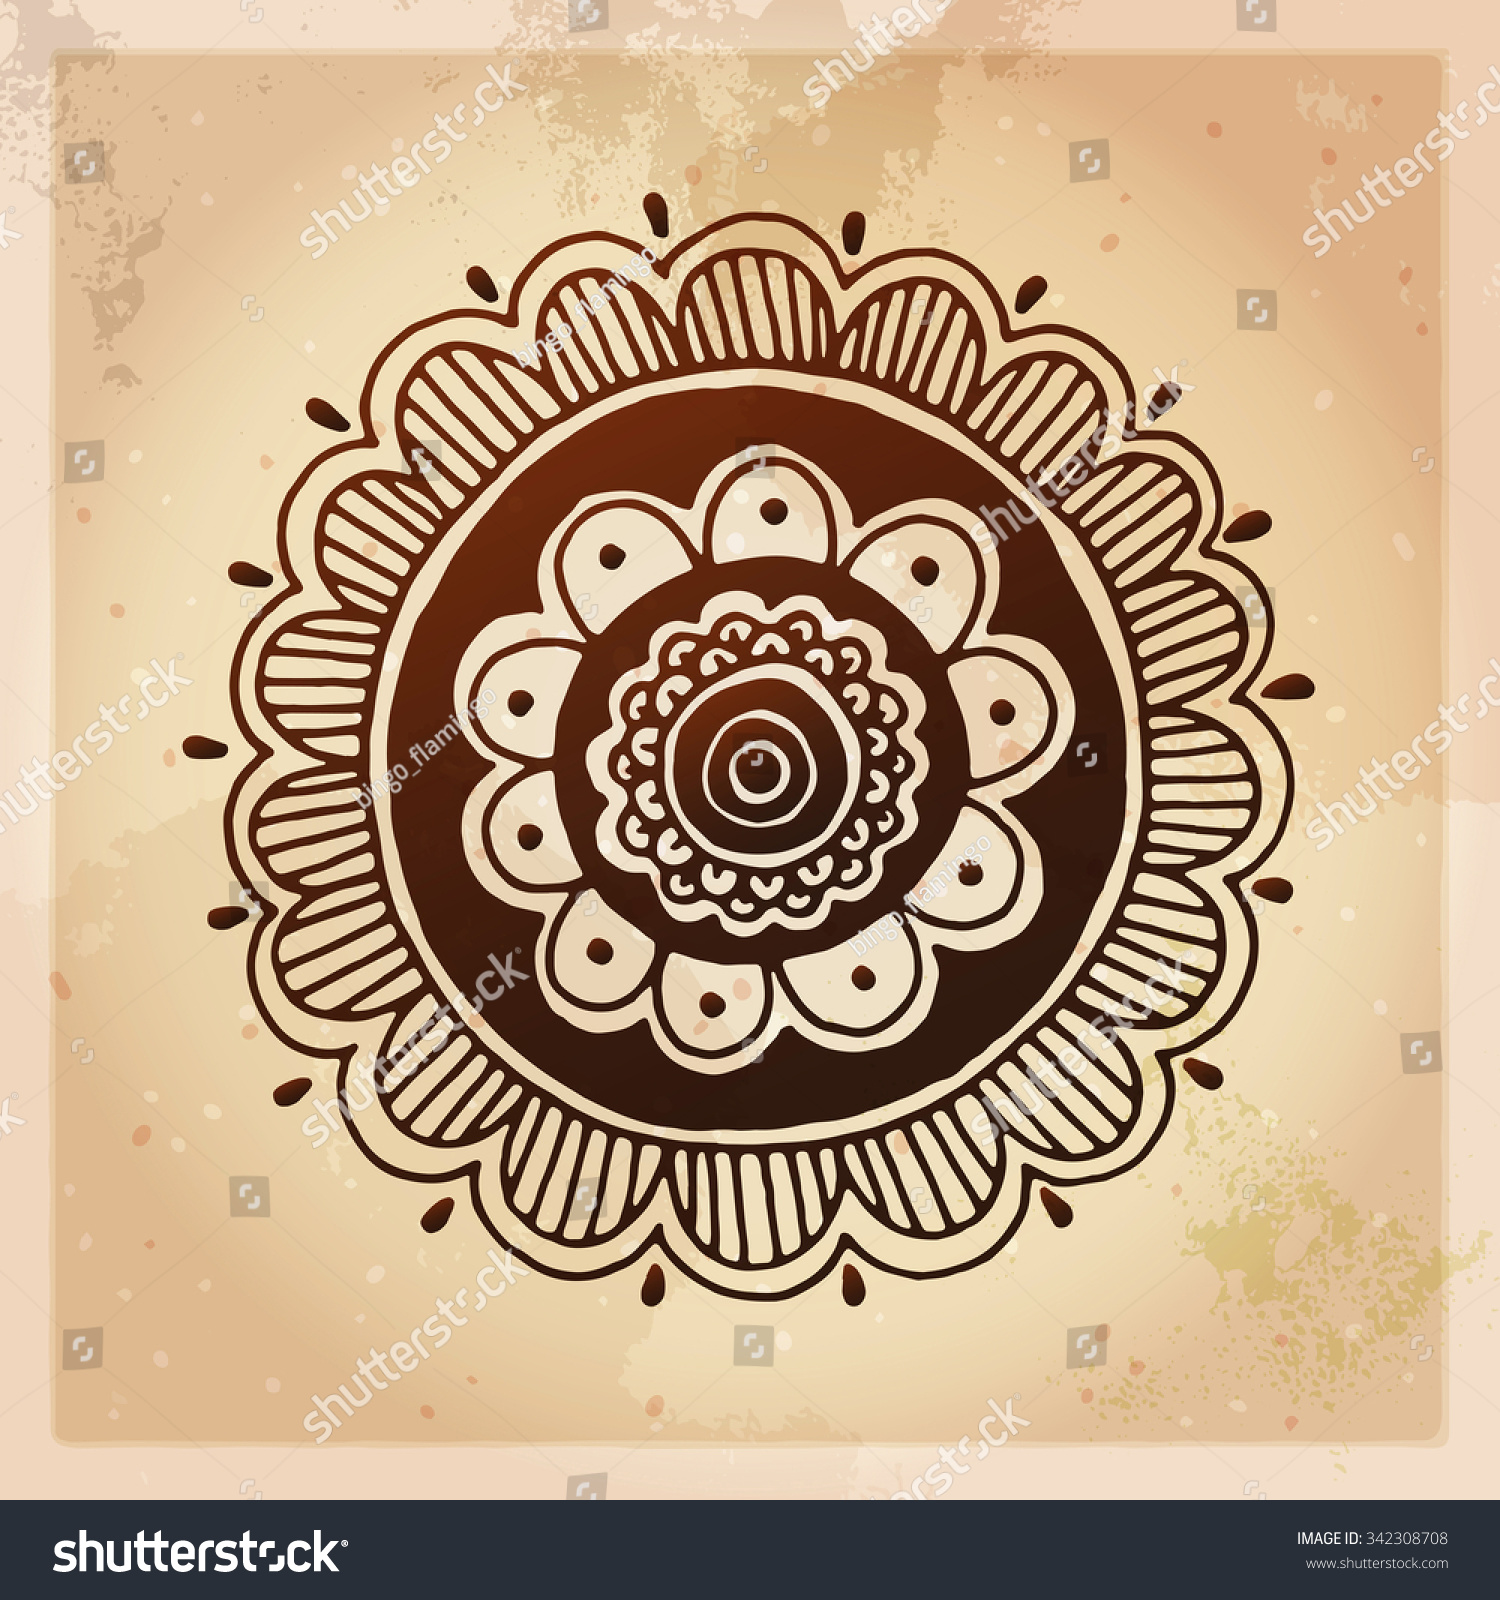 Indian ethnic henna tattoo pattern orient stock vector for Real henna tattoo